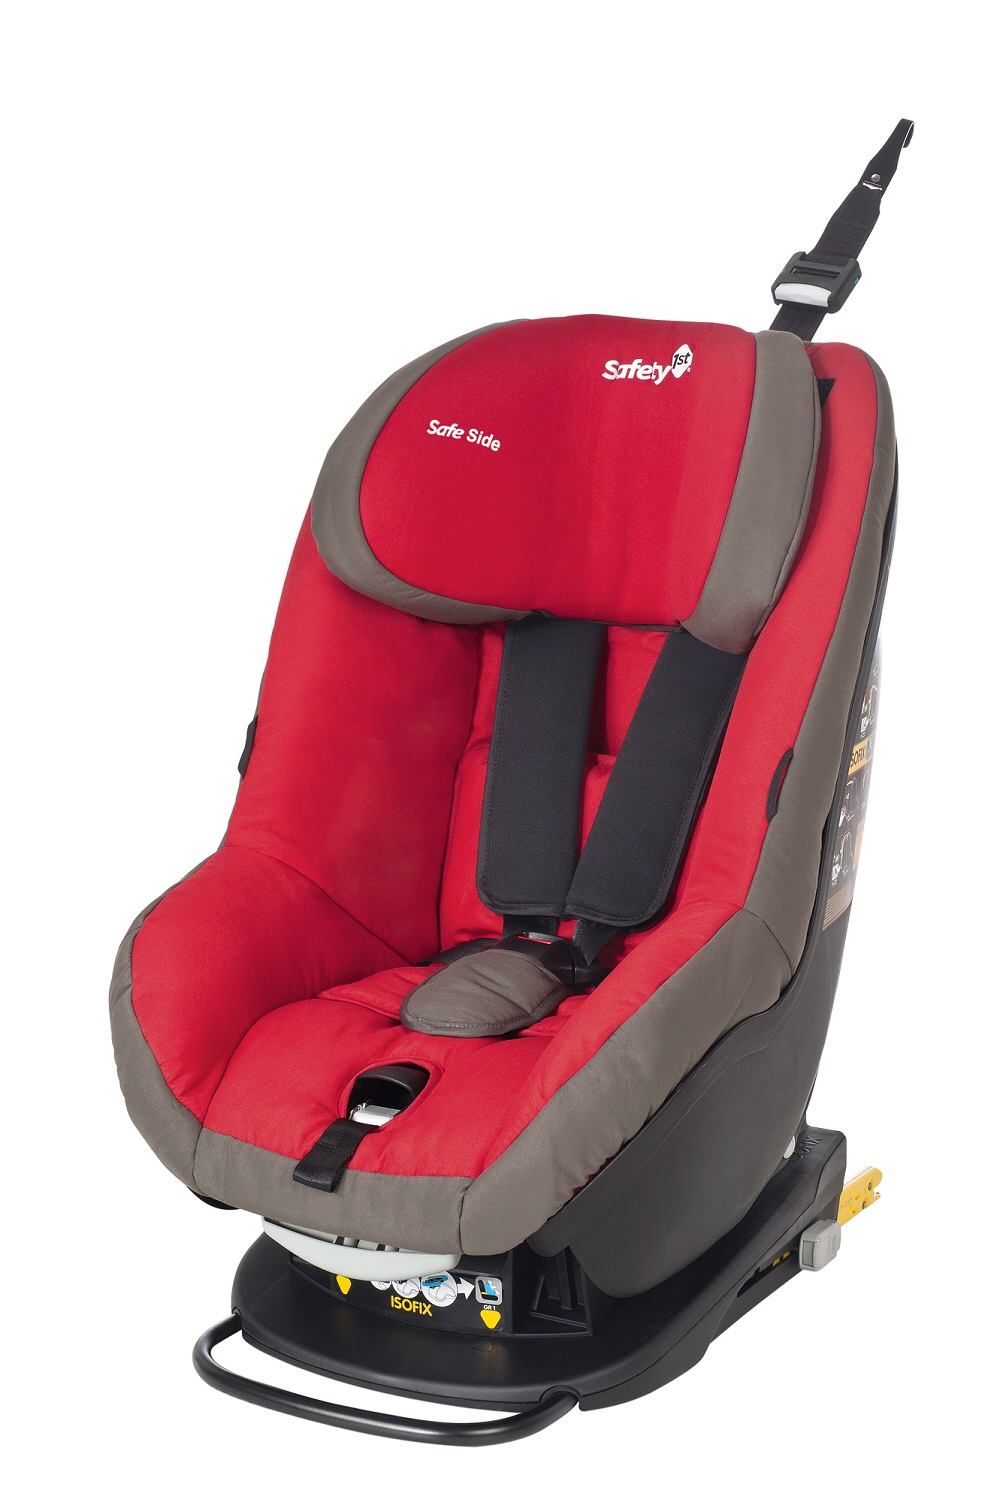 safety 1st child car seat primeofix 2015 red mania buy at kidsroom campaigns everything in red. Black Bedroom Furniture Sets. Home Design Ideas